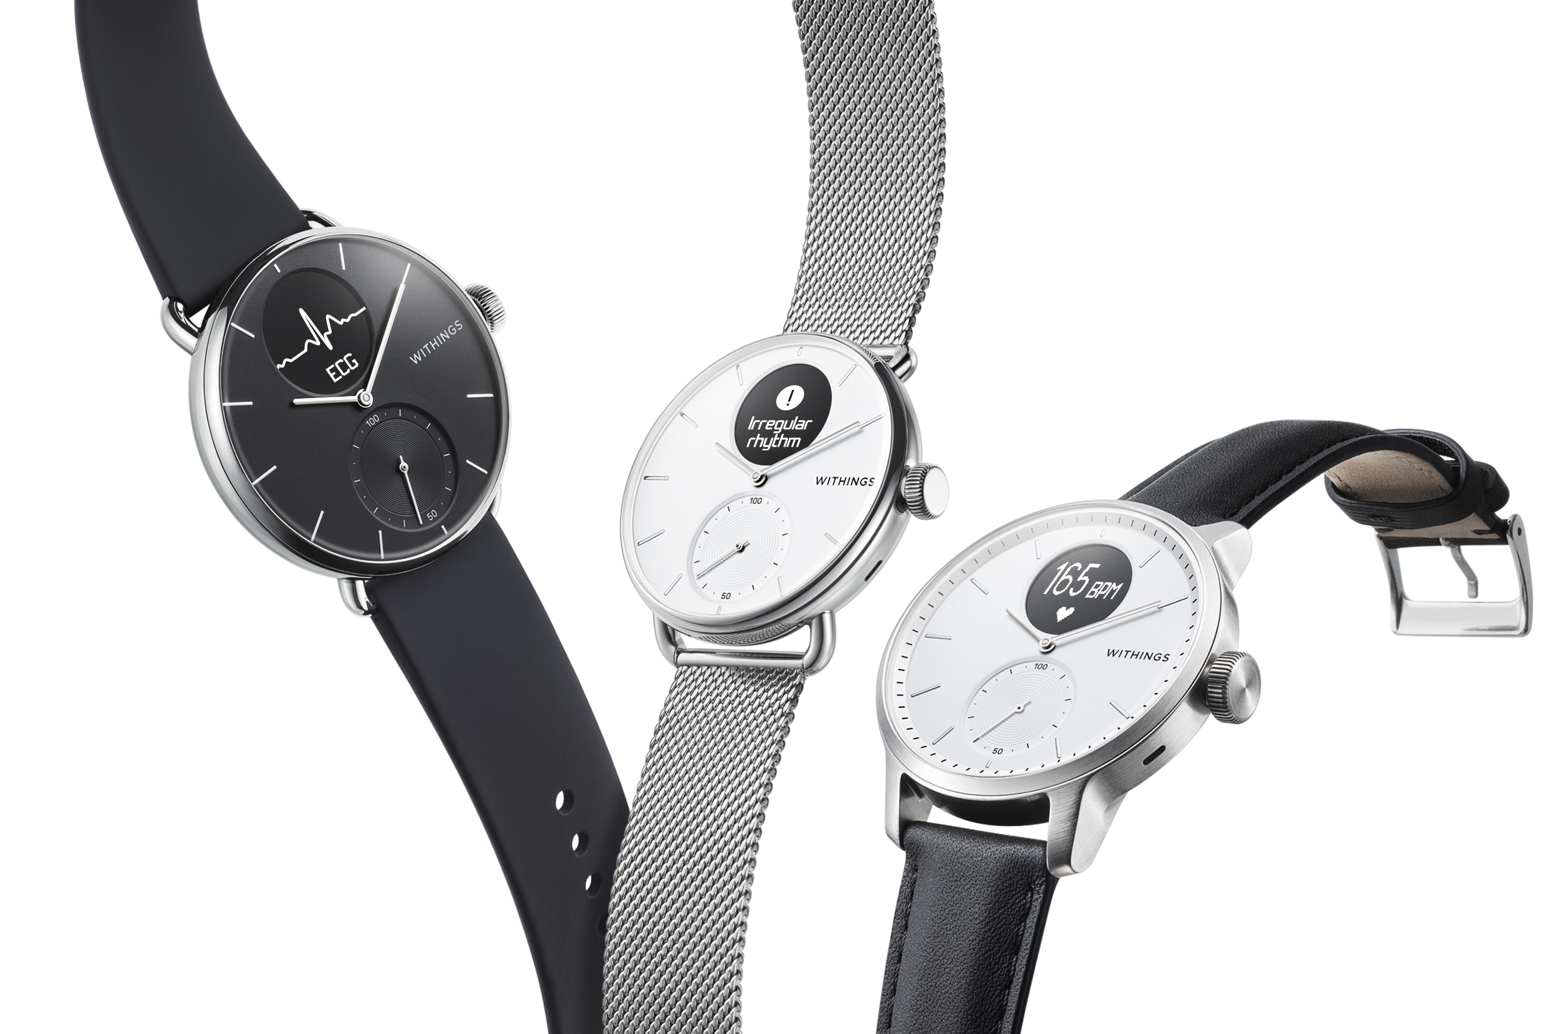 Unclickable 3D of three Withings Scanwatches floating in the air